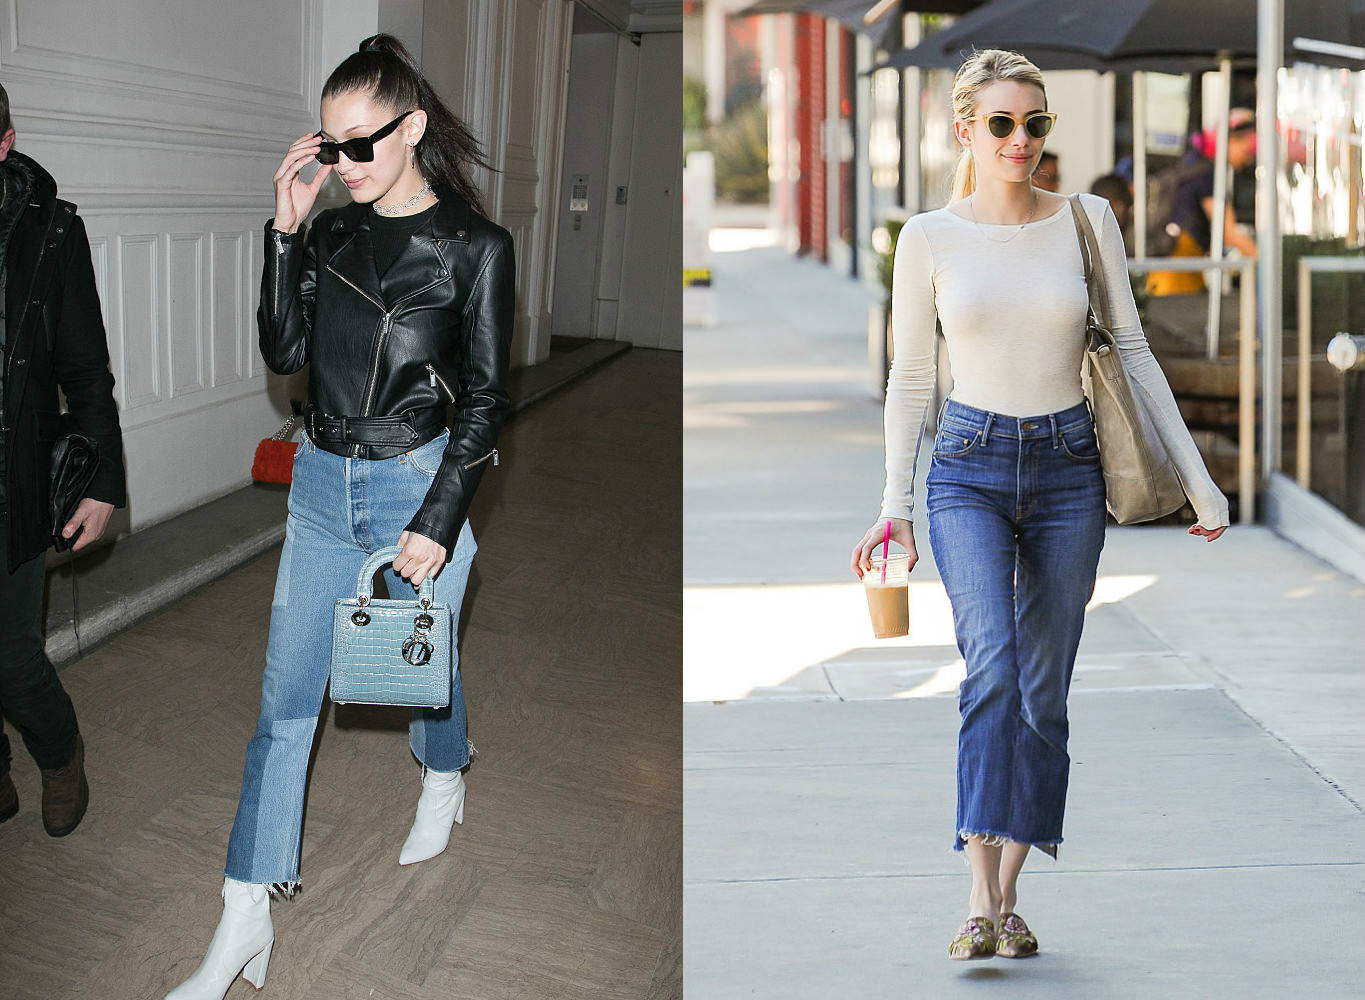 The 6 denim trends you need to try in 2017, because it doesn't hurt to switch things up